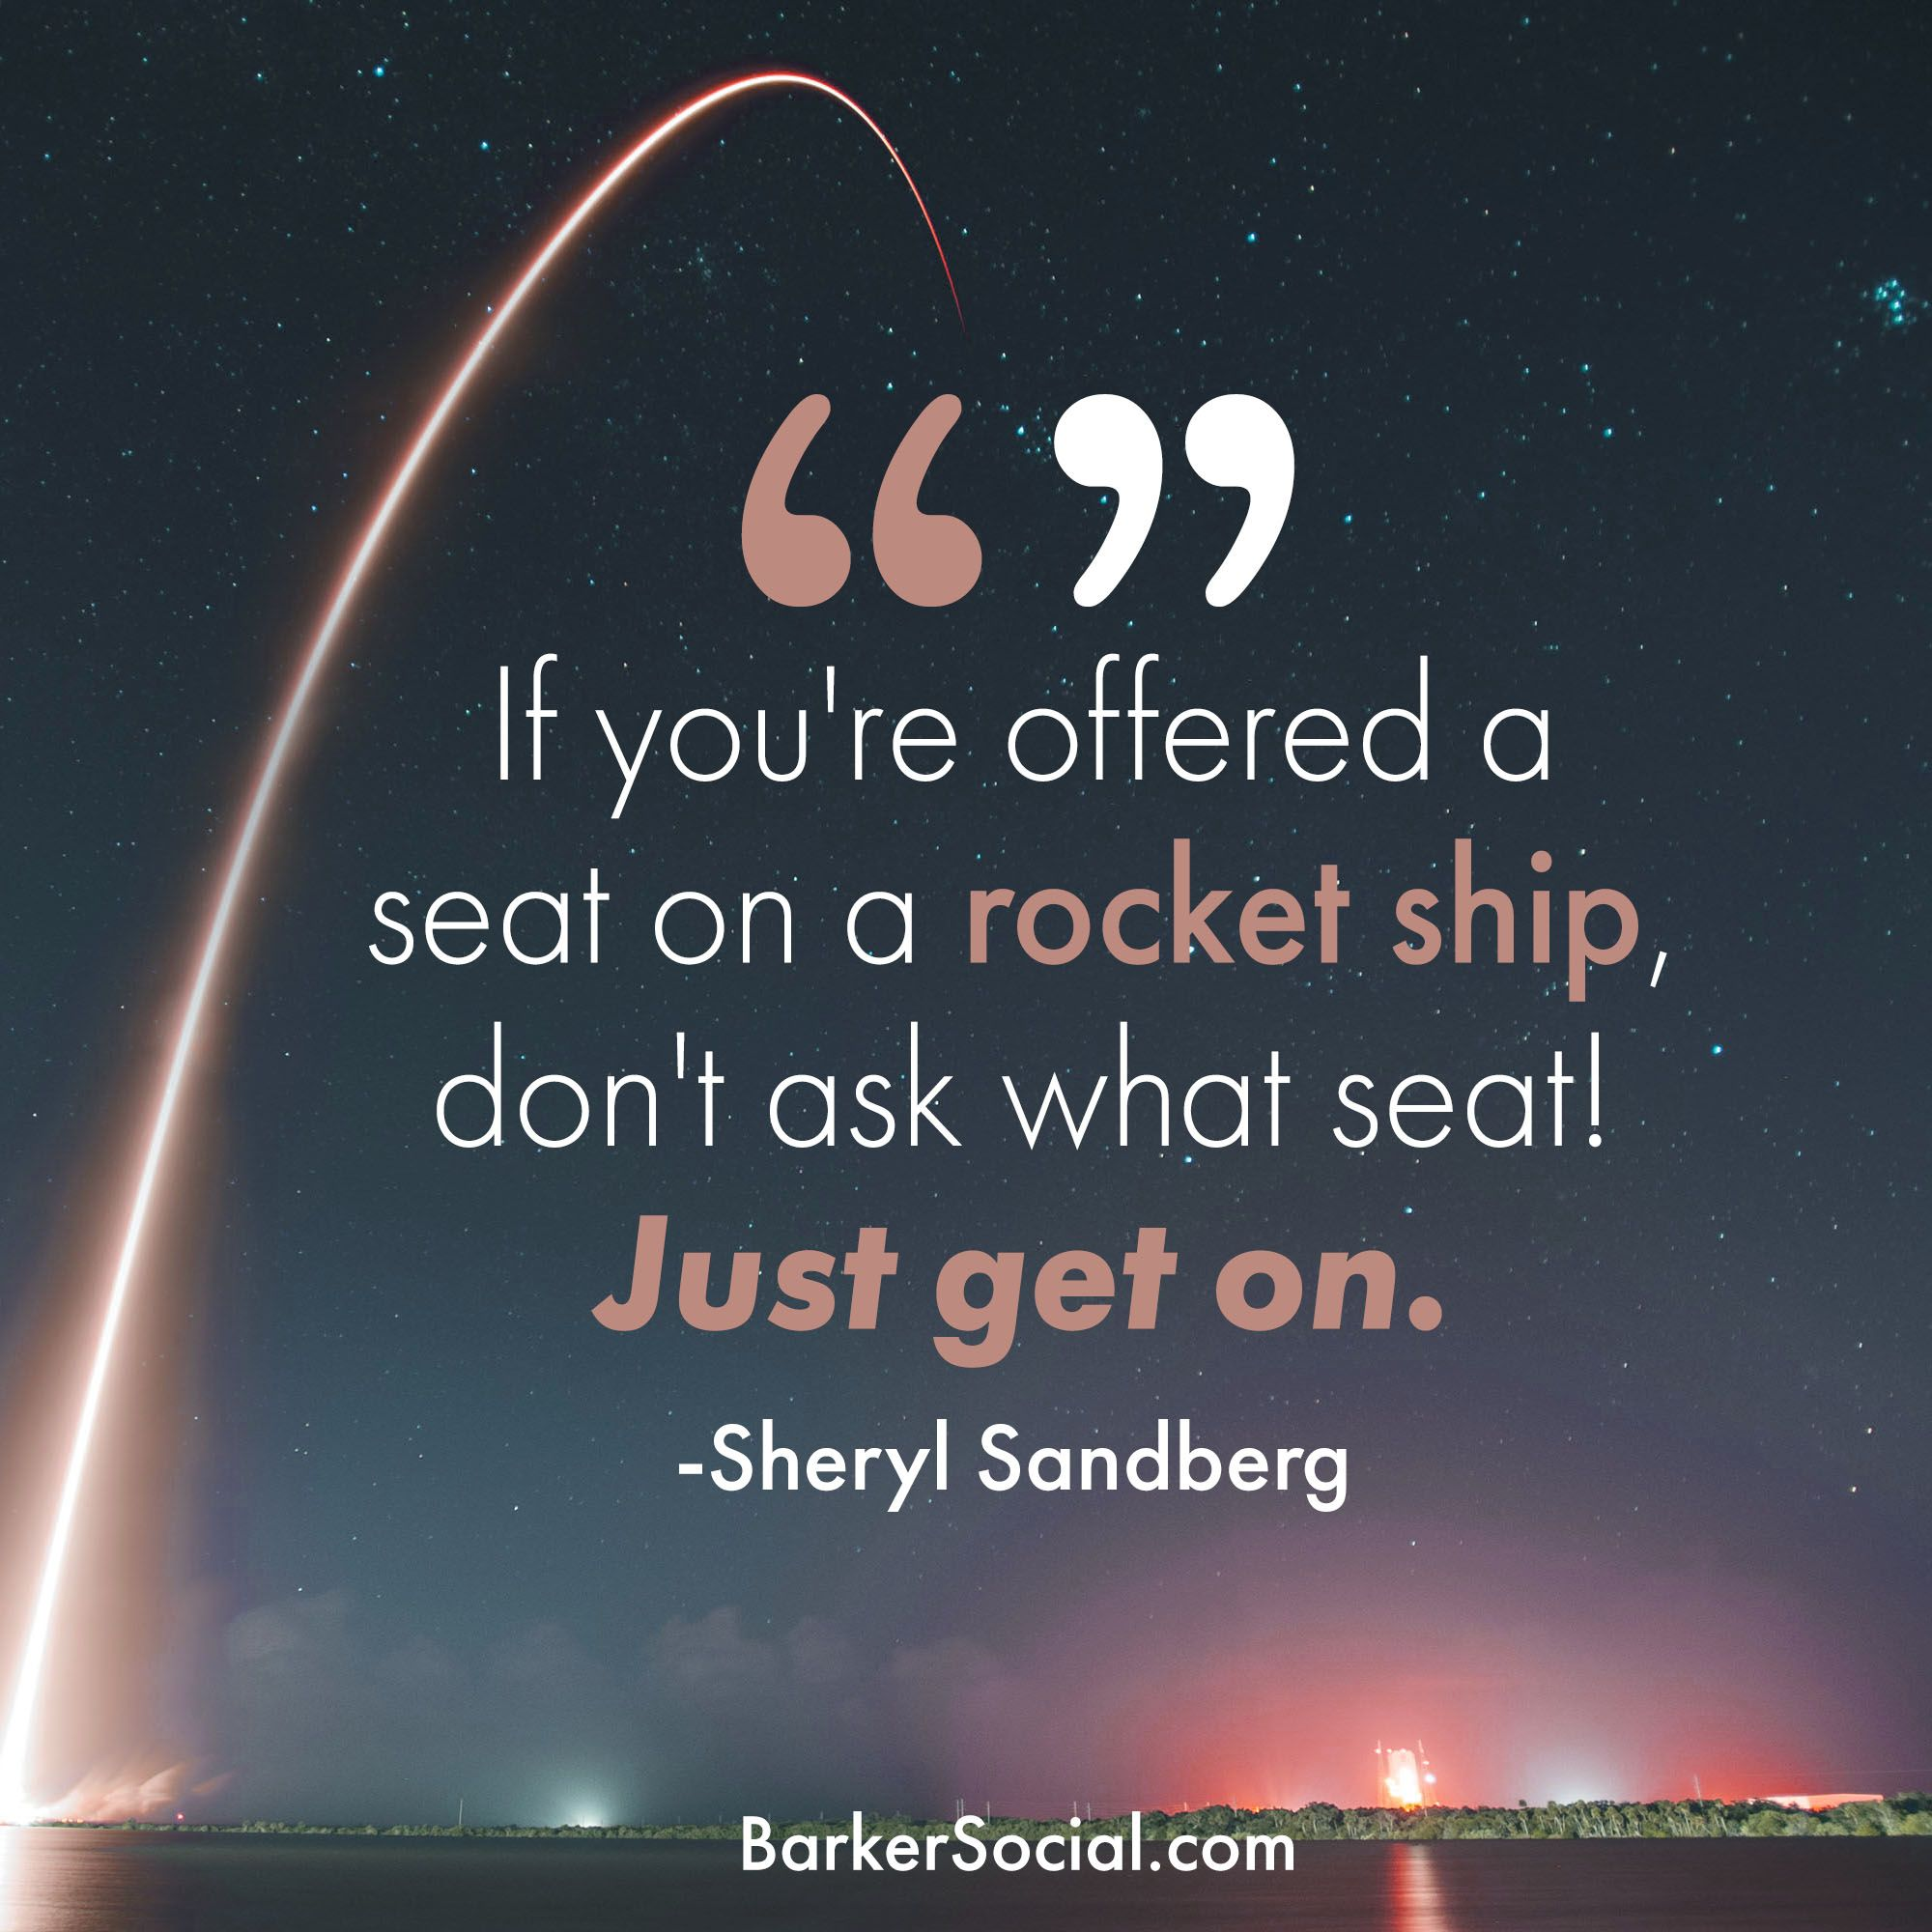 If you're offered a seat on a rocket ship, don't ask what